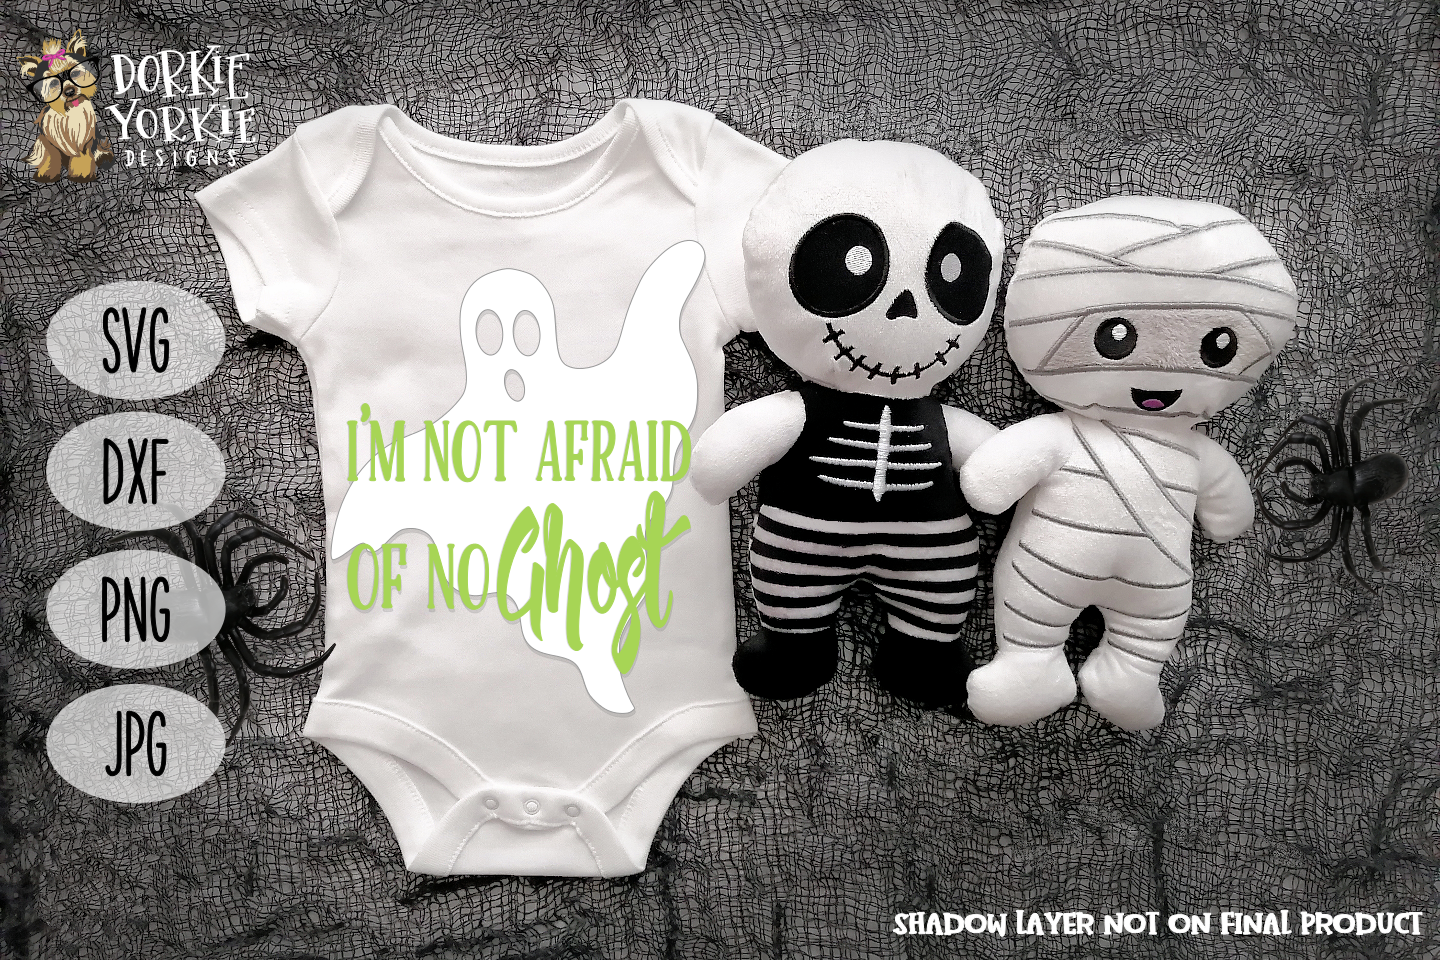 I'm not afraid of no Ghost- Halloween - SVG Cut File example image 1